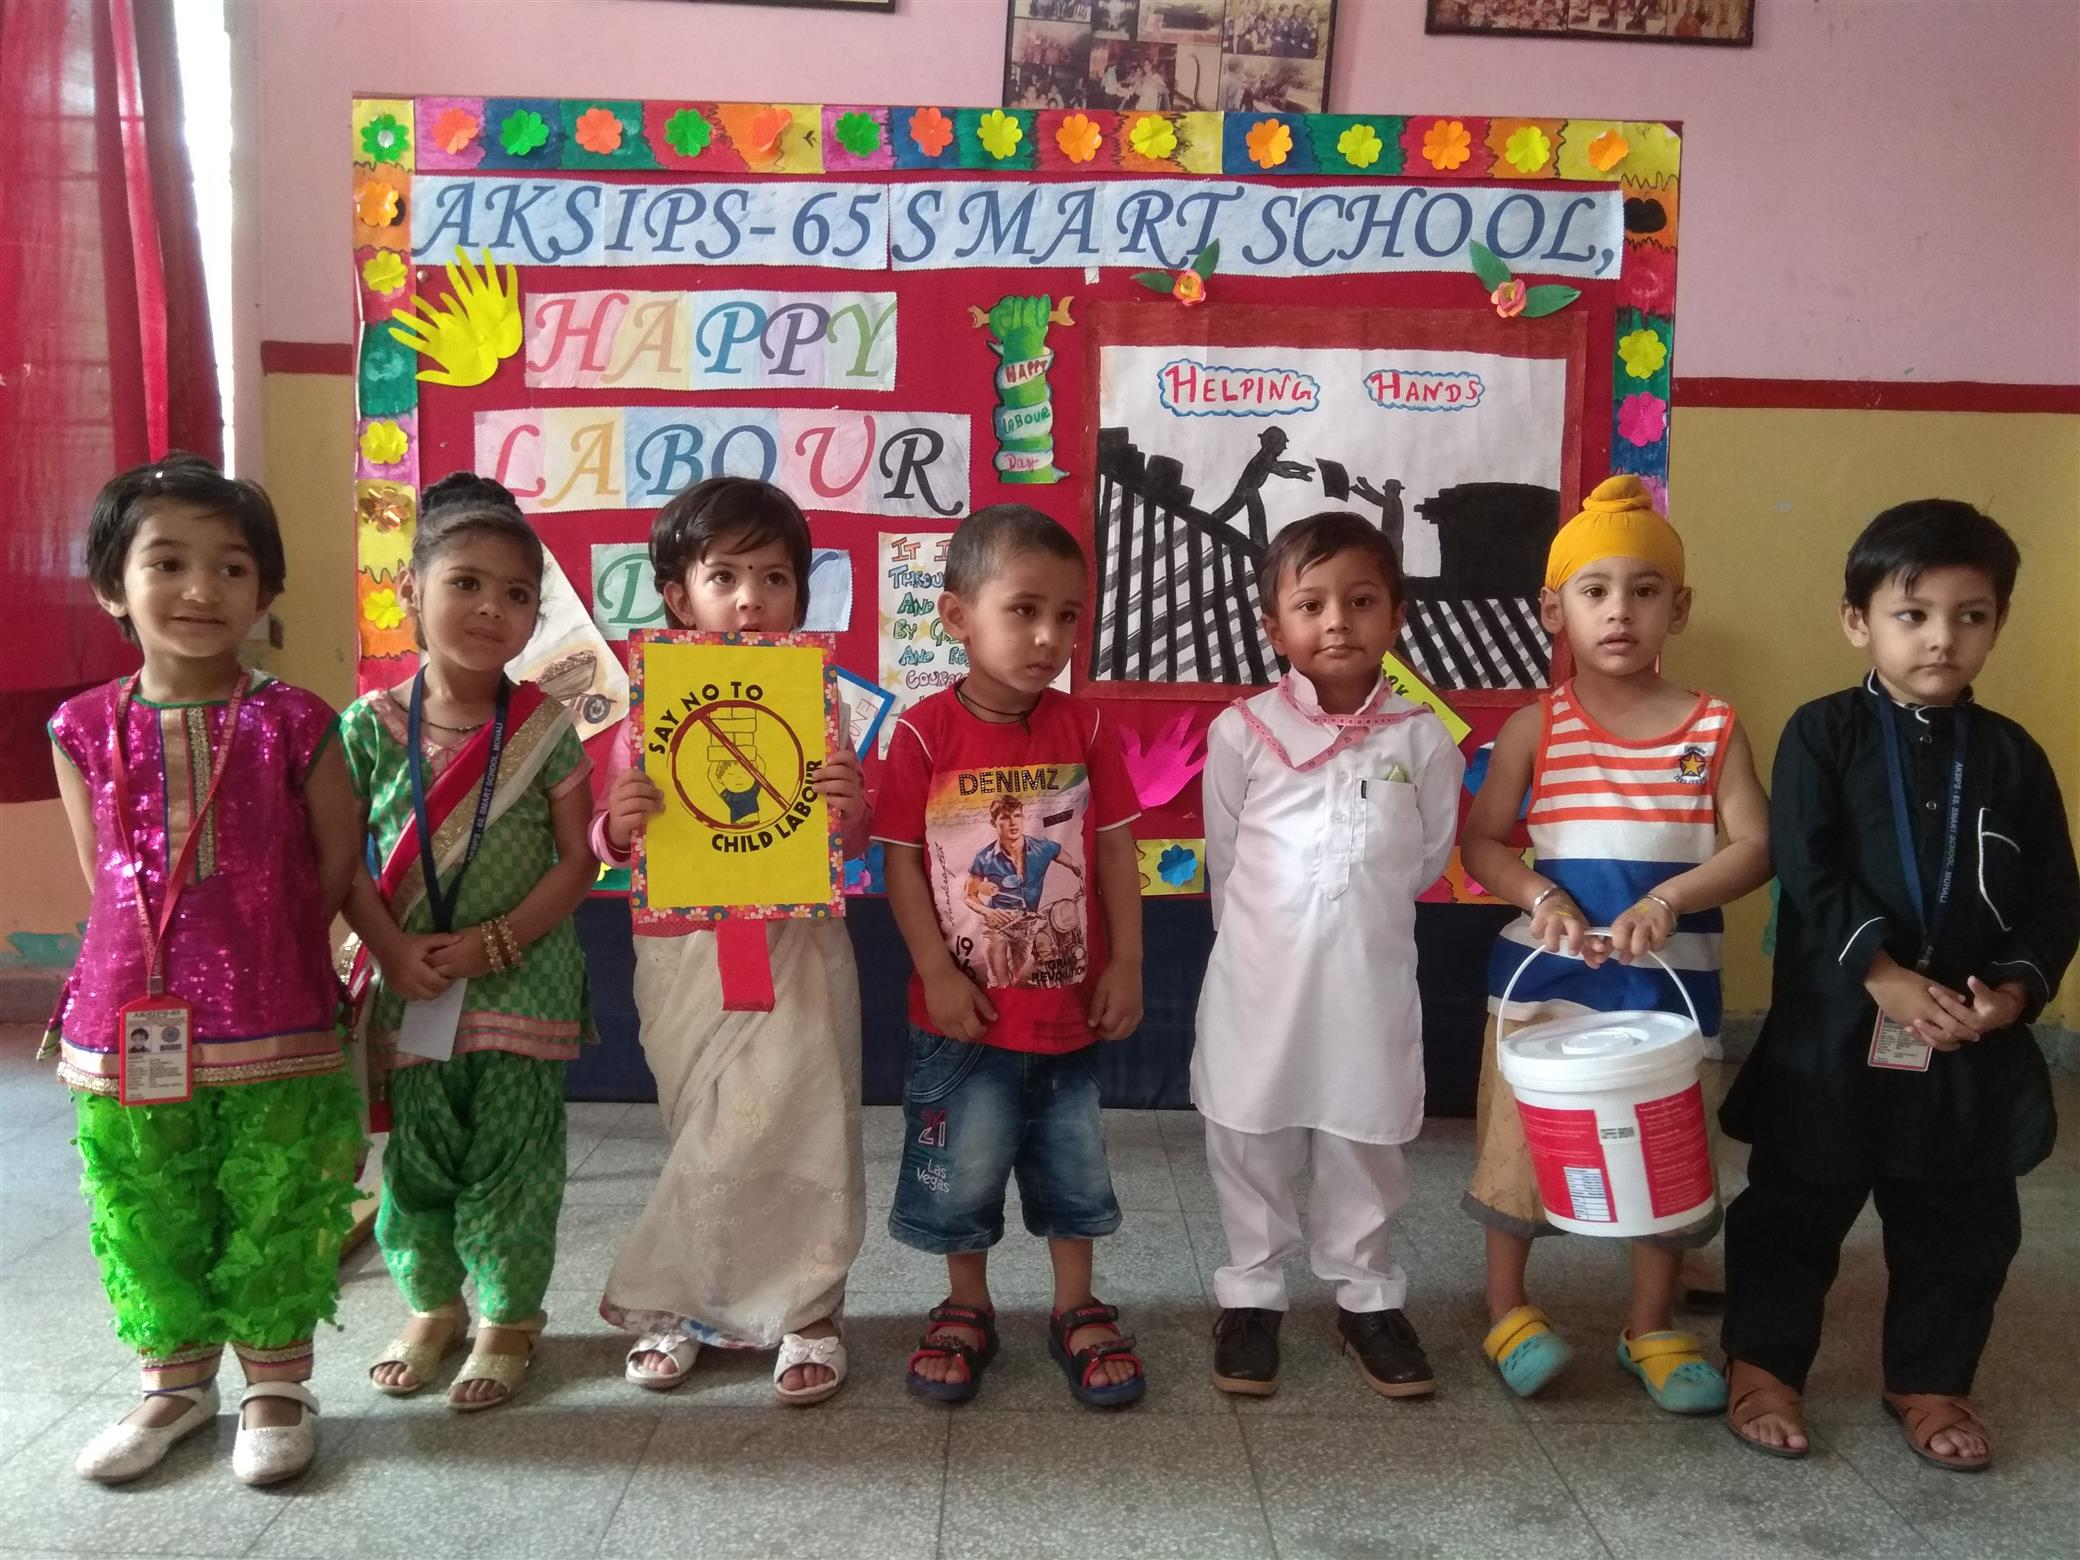 Lil ones rock with their reverence and gratitude shown through their fancy dress activity on Labour day   AKSIPS 65 Chandigarh